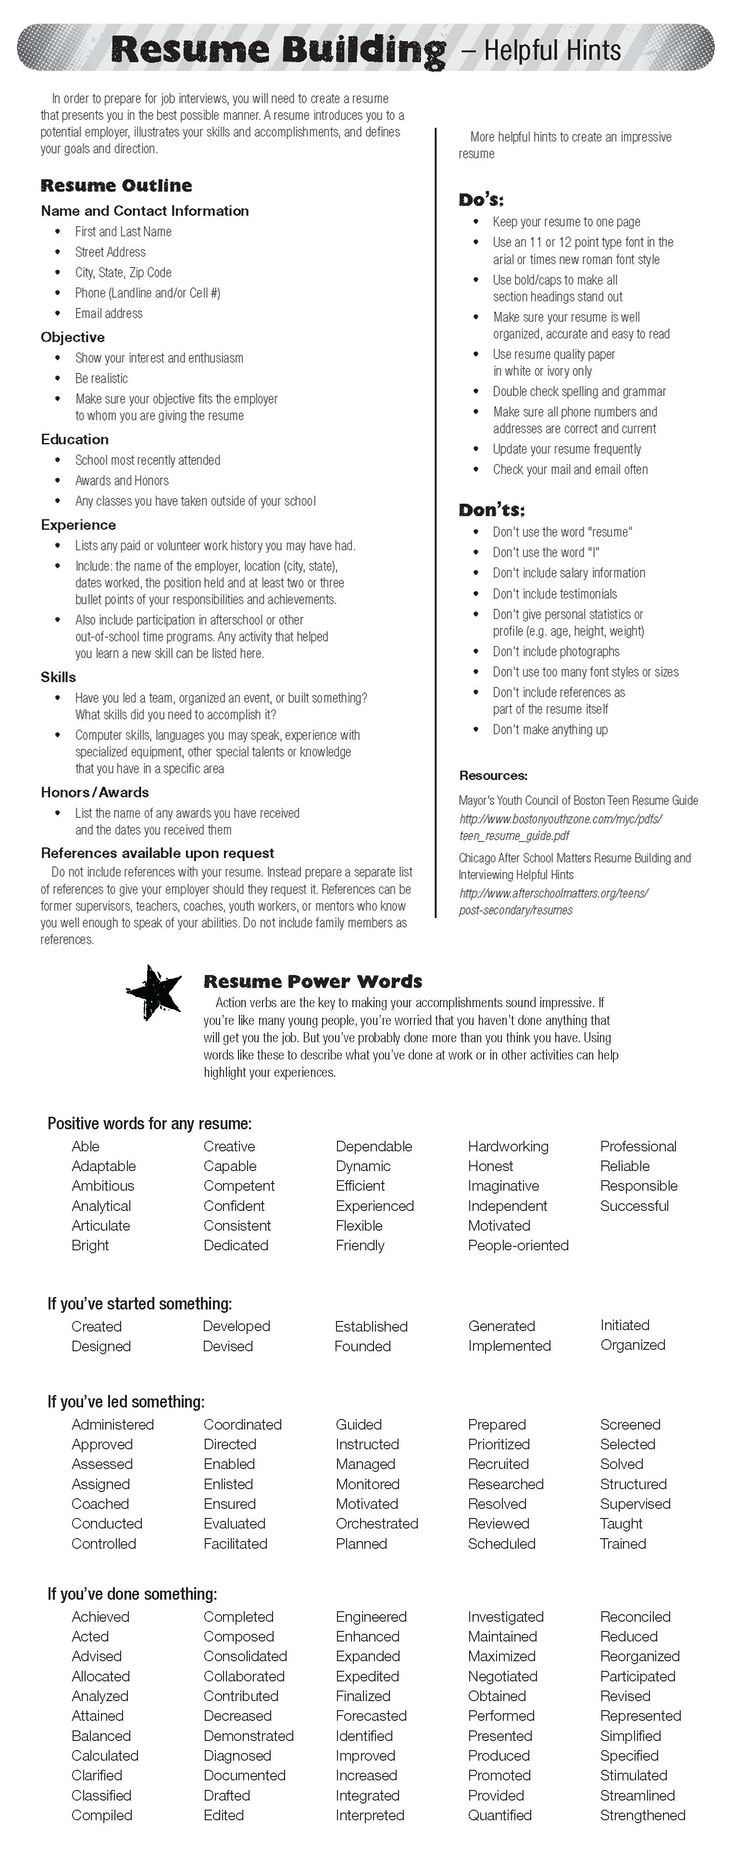 Picnictoimpeachus  Seductive  Ideas About Resume On Pinterest  Cv Format Resume Cv And  With Gorgeous  Ideas About Resume On Pinterest  Cv Format Resume Cv And Resume Templates With Agreeable Accounting Manager Resume Examples Also Chef Resume Objective In Addition Resume Examples For College Students With Work Experience And Top Resume Skills As Well As Accounting Clerk Resume Sample Additionally Strong Communication Skills Resume From Pinterestcom With Picnictoimpeachus  Gorgeous  Ideas About Resume On Pinterest  Cv Format Resume Cv And  With Agreeable  Ideas About Resume On Pinterest  Cv Format Resume Cv And Resume Templates And Seductive Accounting Manager Resume Examples Also Chef Resume Objective In Addition Resume Examples For College Students With Work Experience From Pinterestcom